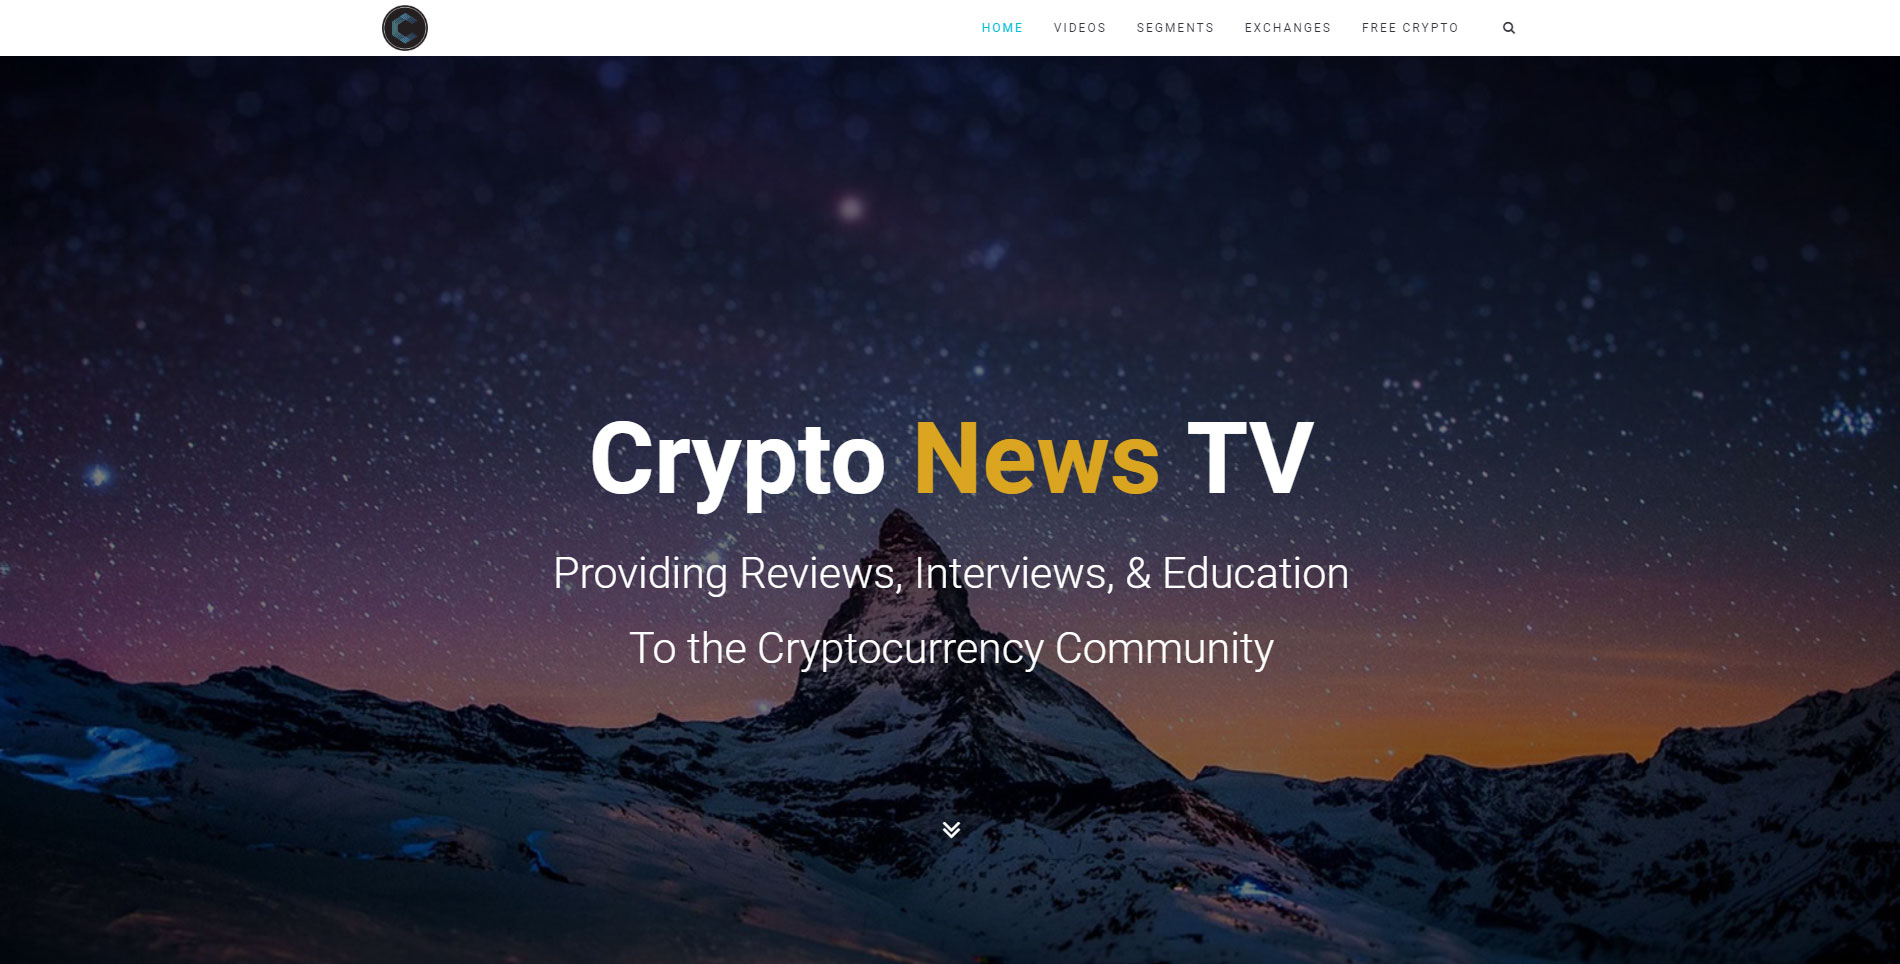 Crypto News TV Mobile App & Website